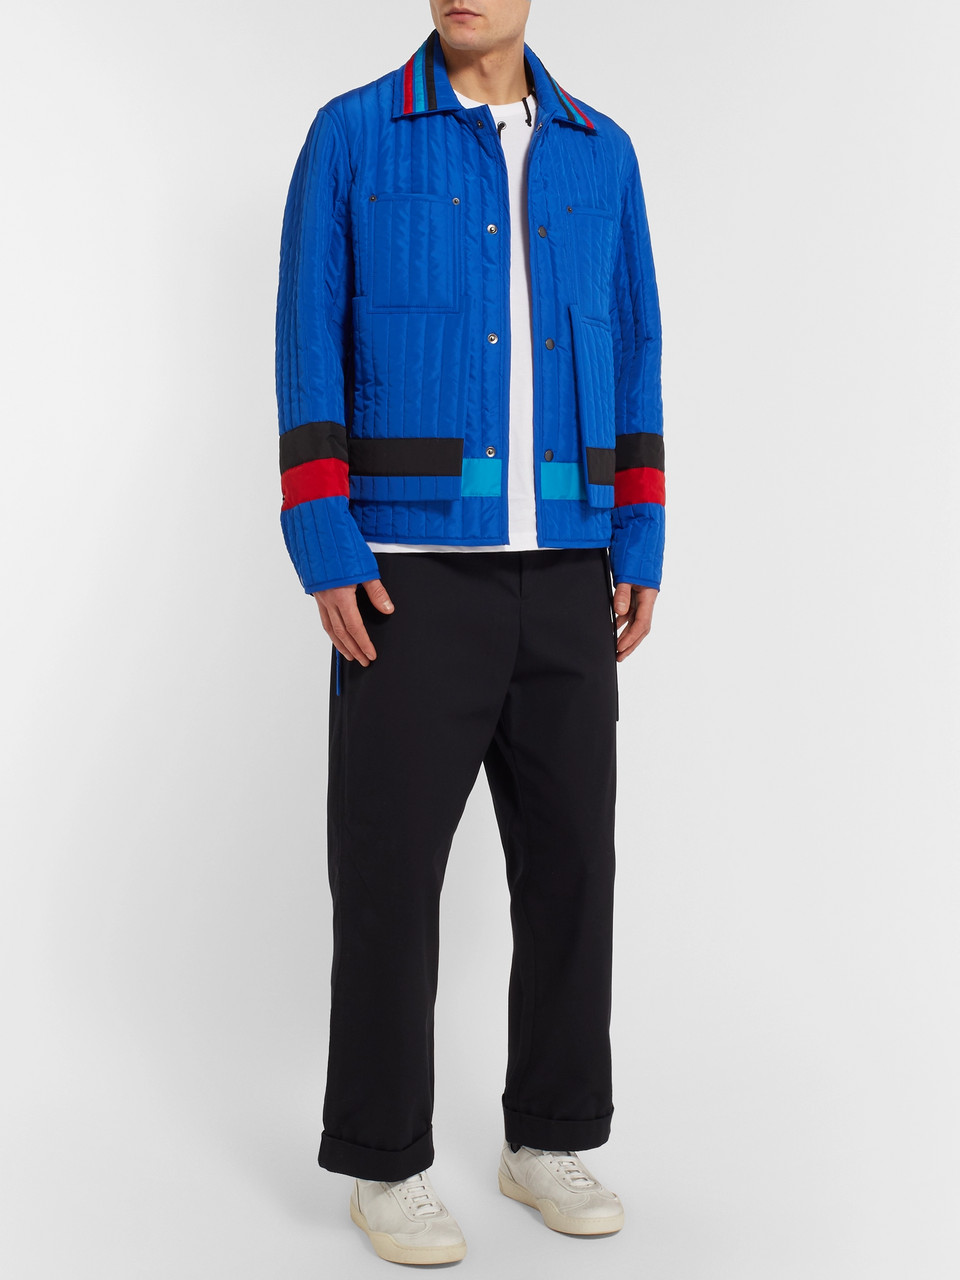 Craig Green Striped Quilted Shell Jacket